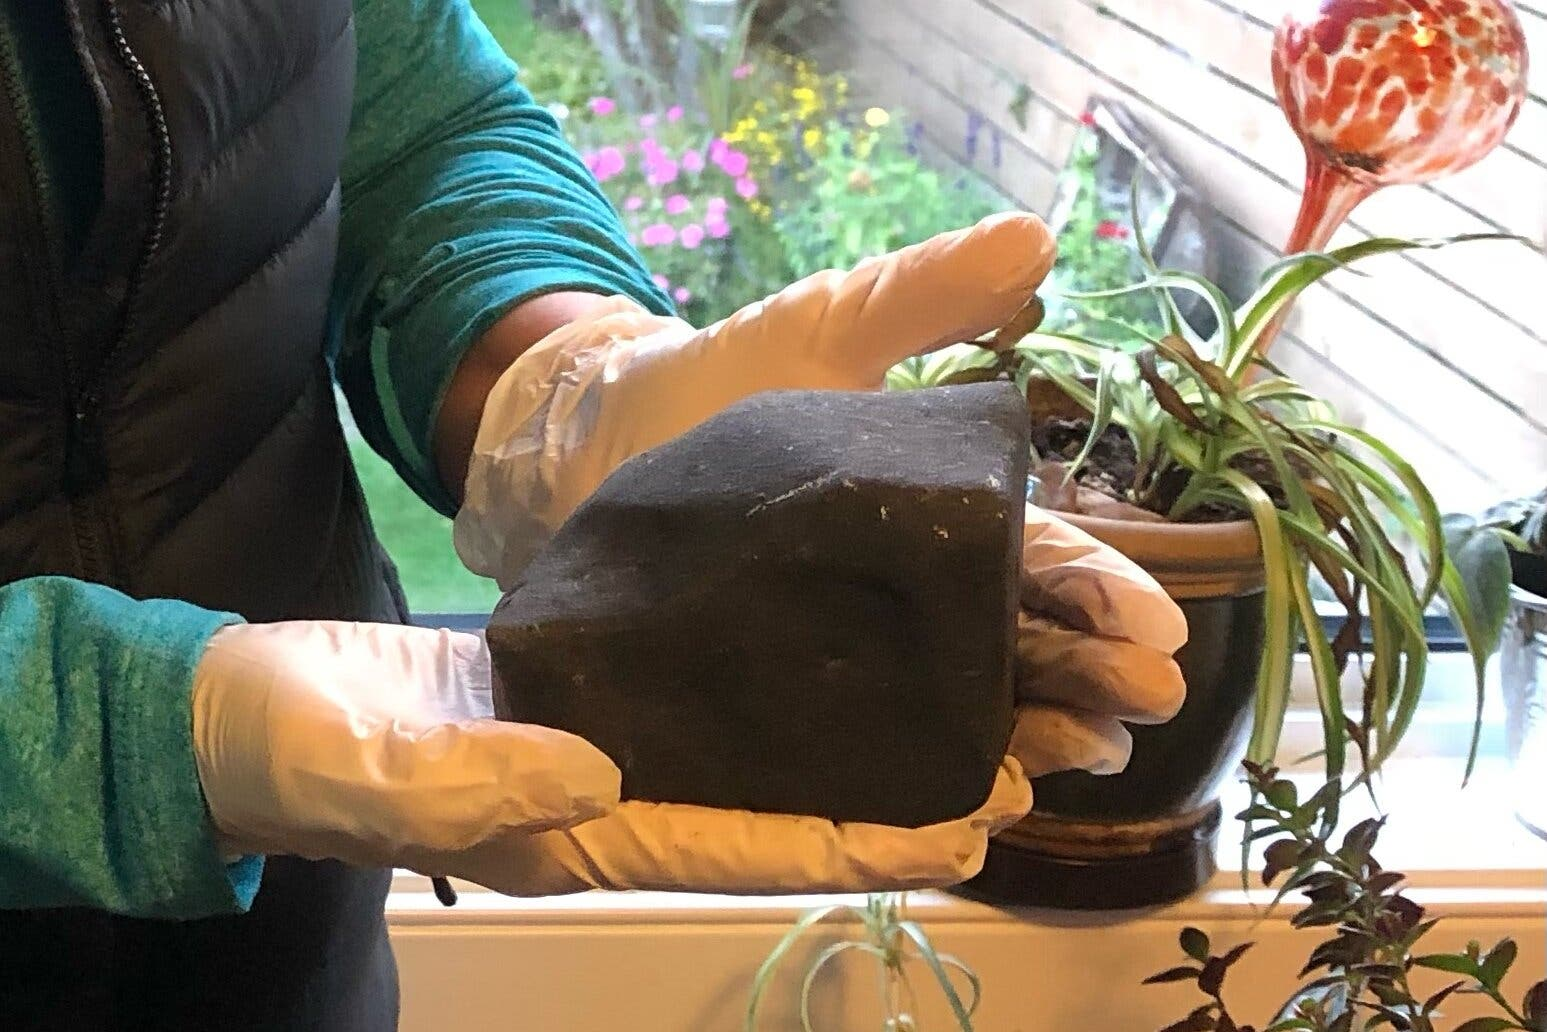 British Columbia Resident Gets Rudely Awakened By A Falling Meteorite